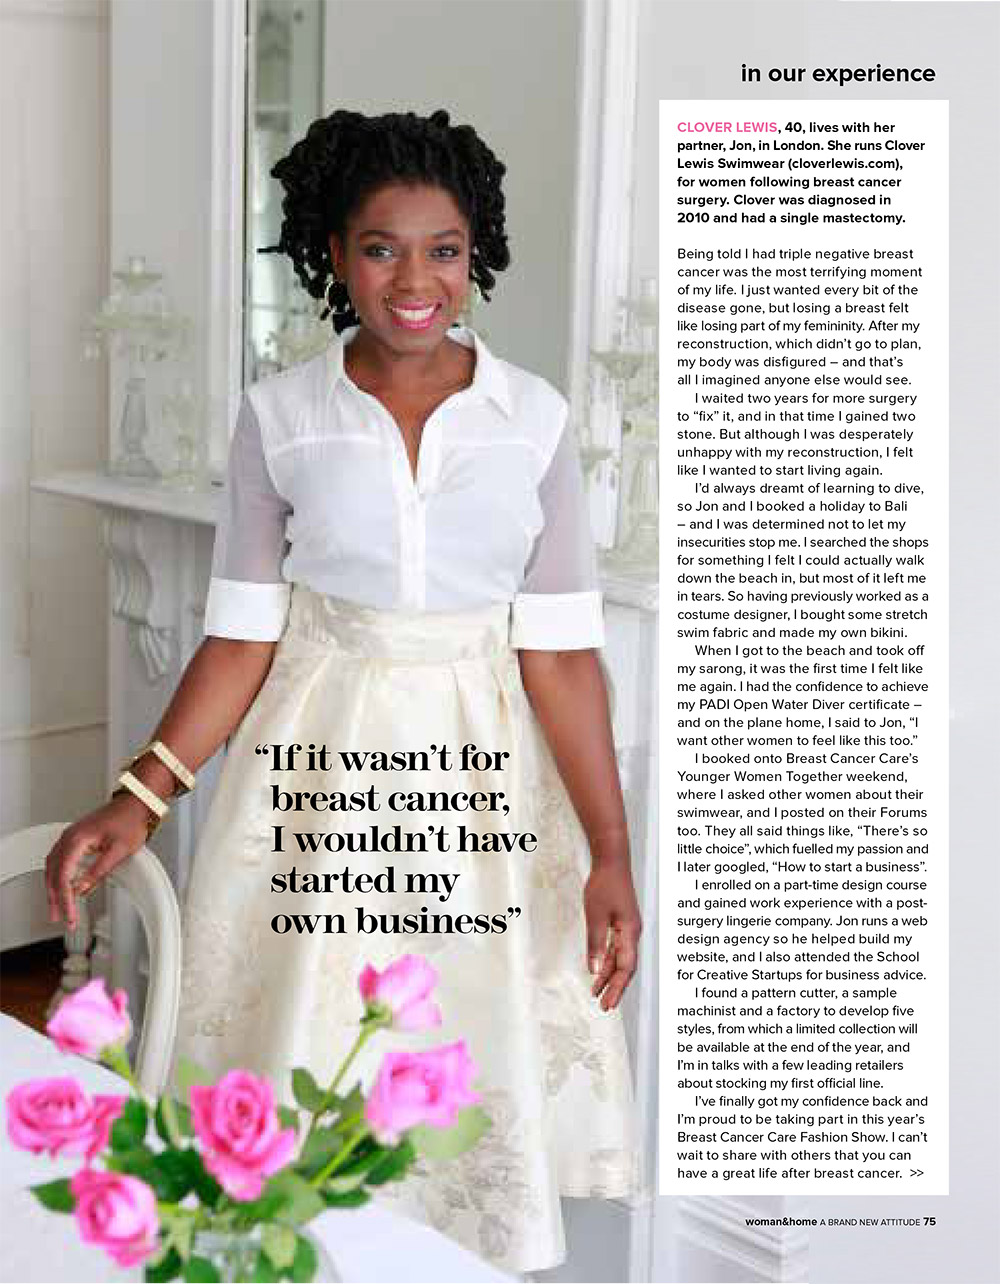 Woman & Home Magazine October 2014 where I speak about how the dilemma of the disease spurned on my desire to create Clover Lewis Swimwear.